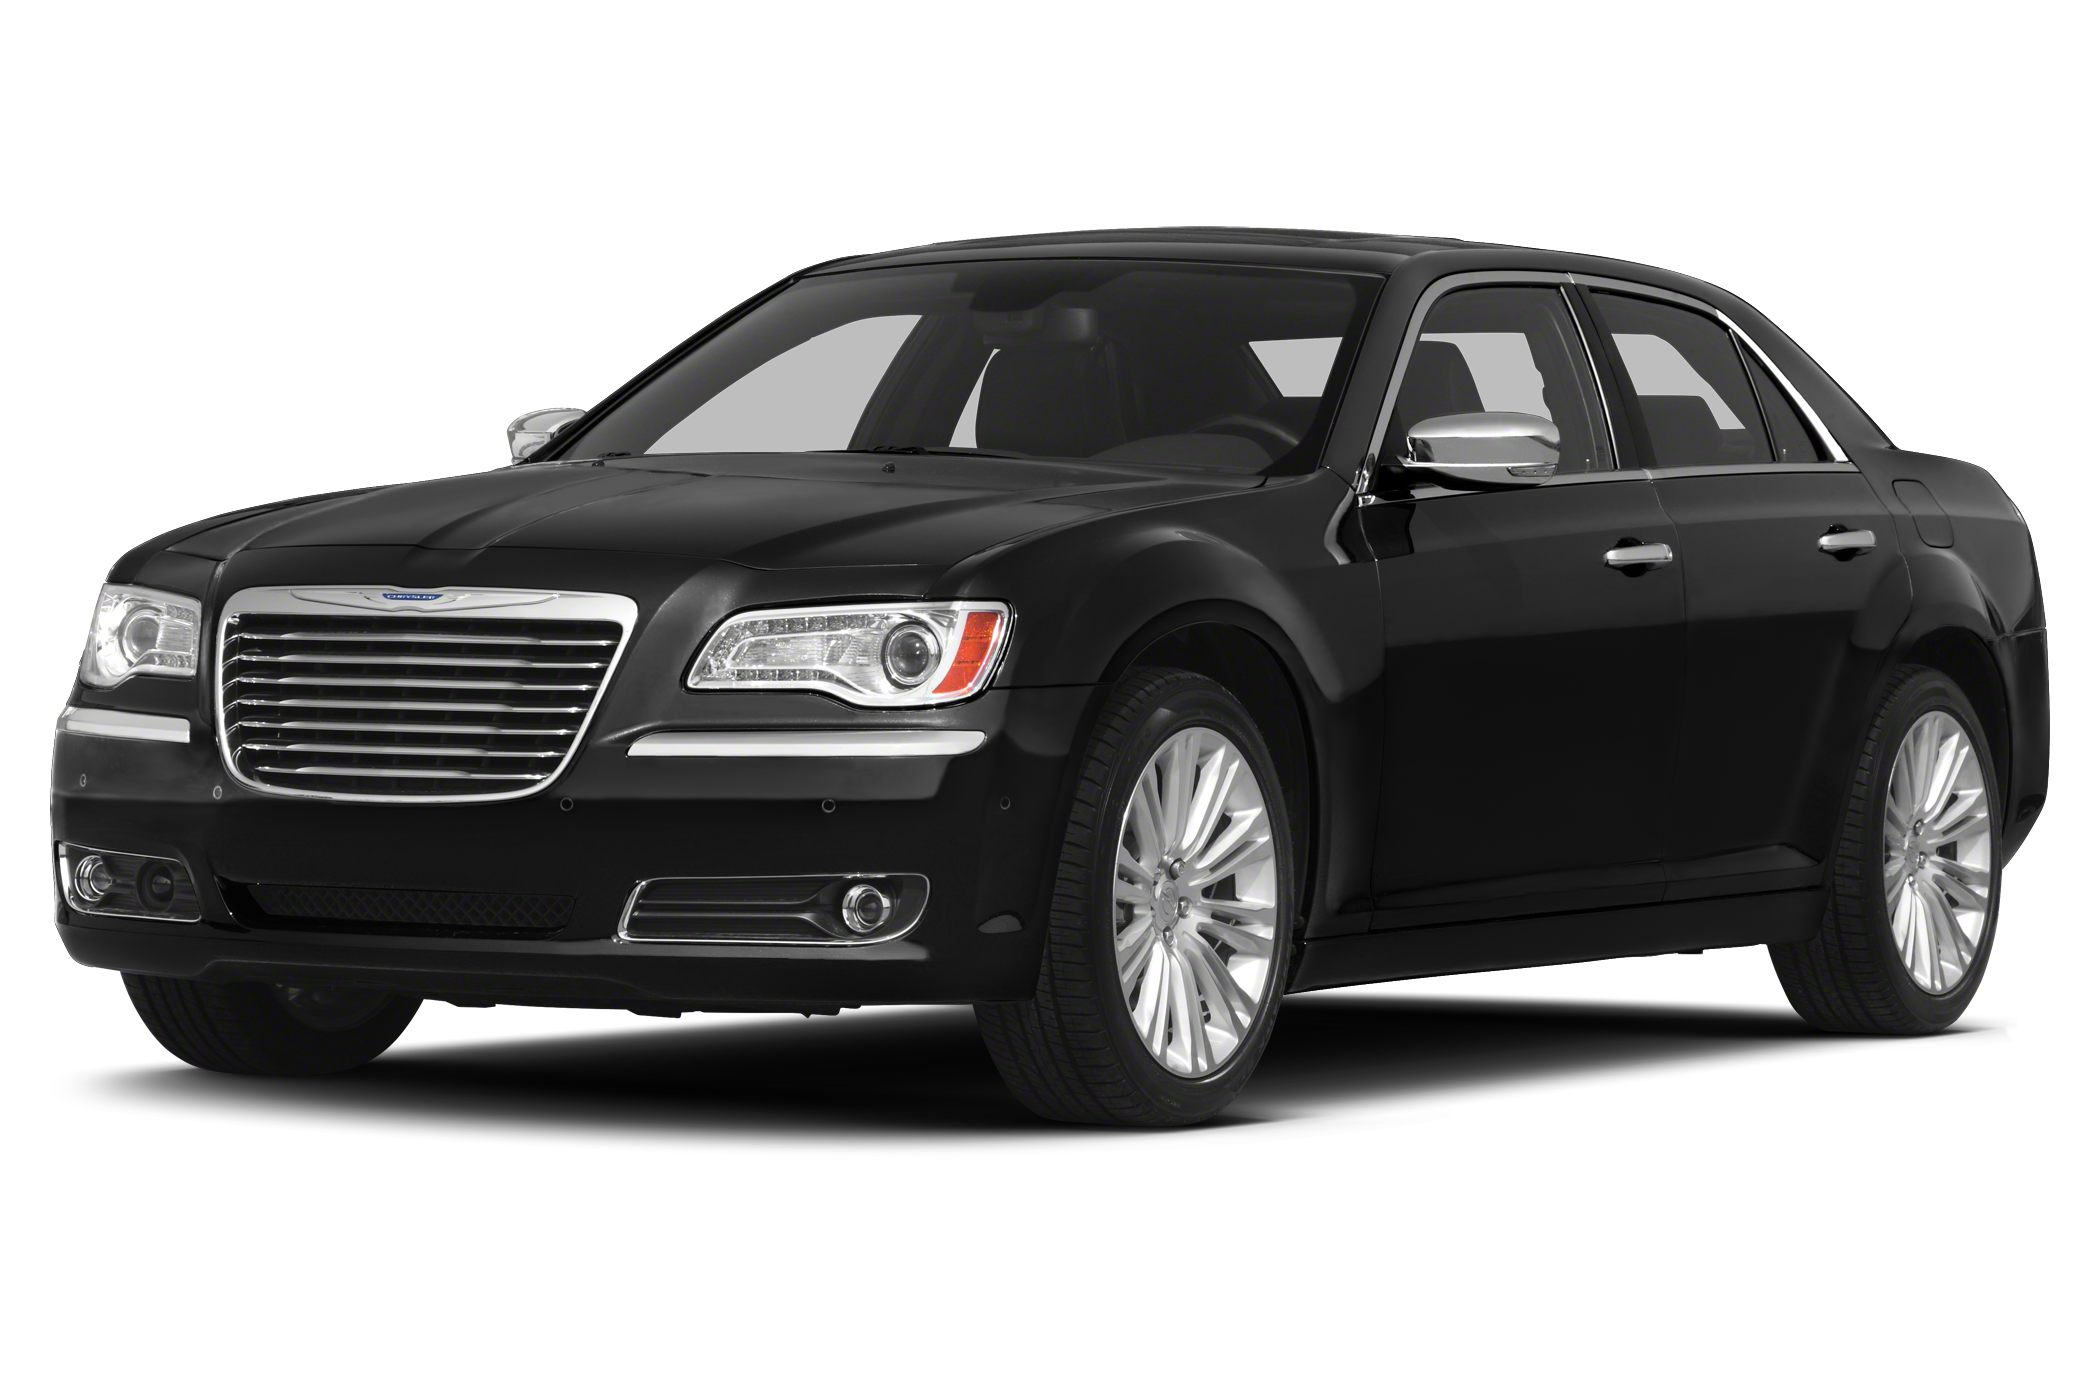 2013 Chrysler 300 Base Includes a CARFAX buyback guarantee Less than 33k Miles New Arrival Sa